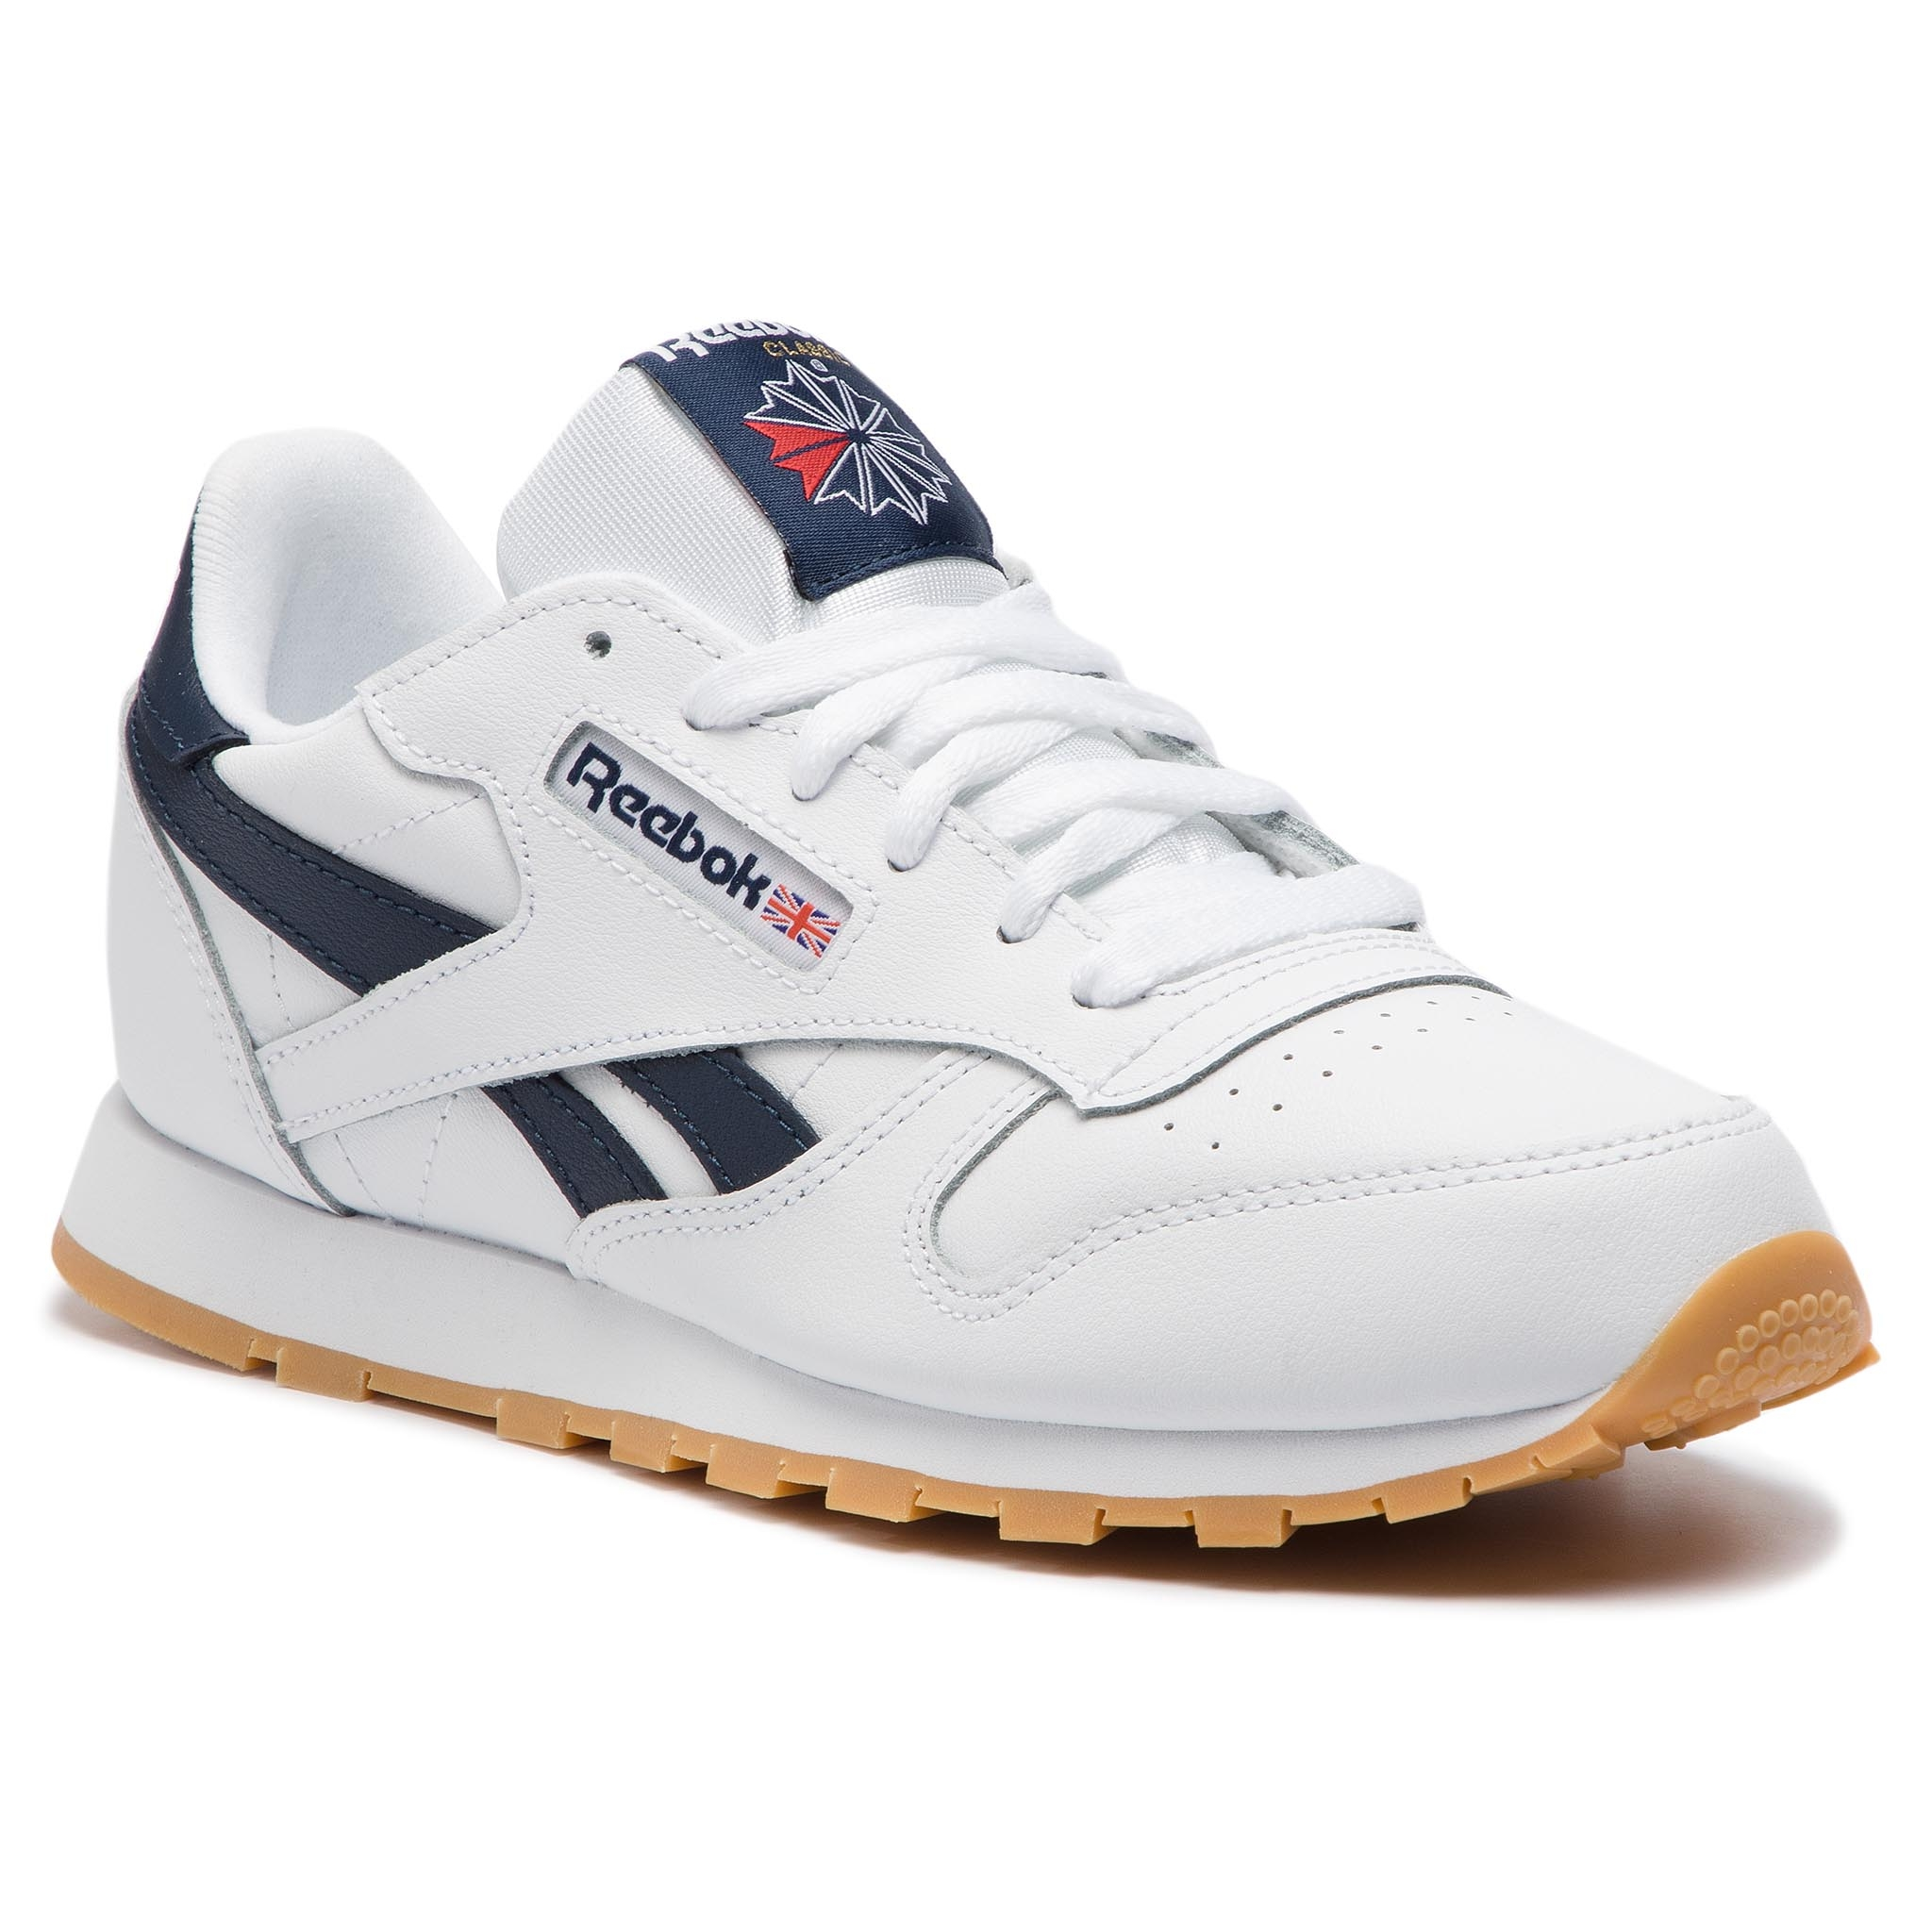 938d06c8f4531 Buty Reebok - Classic Leather DV4567 White/Collegiate Navy/Gum ...